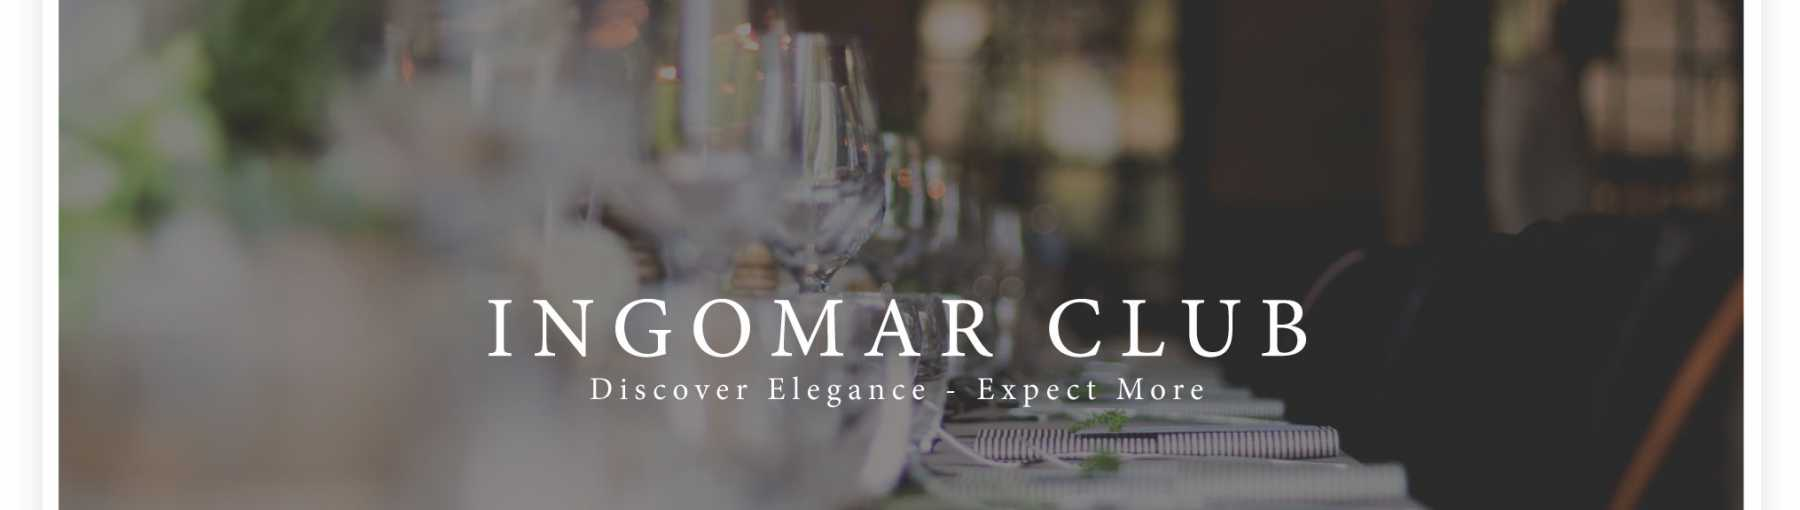 Image showcasing core design Theme - Discover Elegance - Expect More